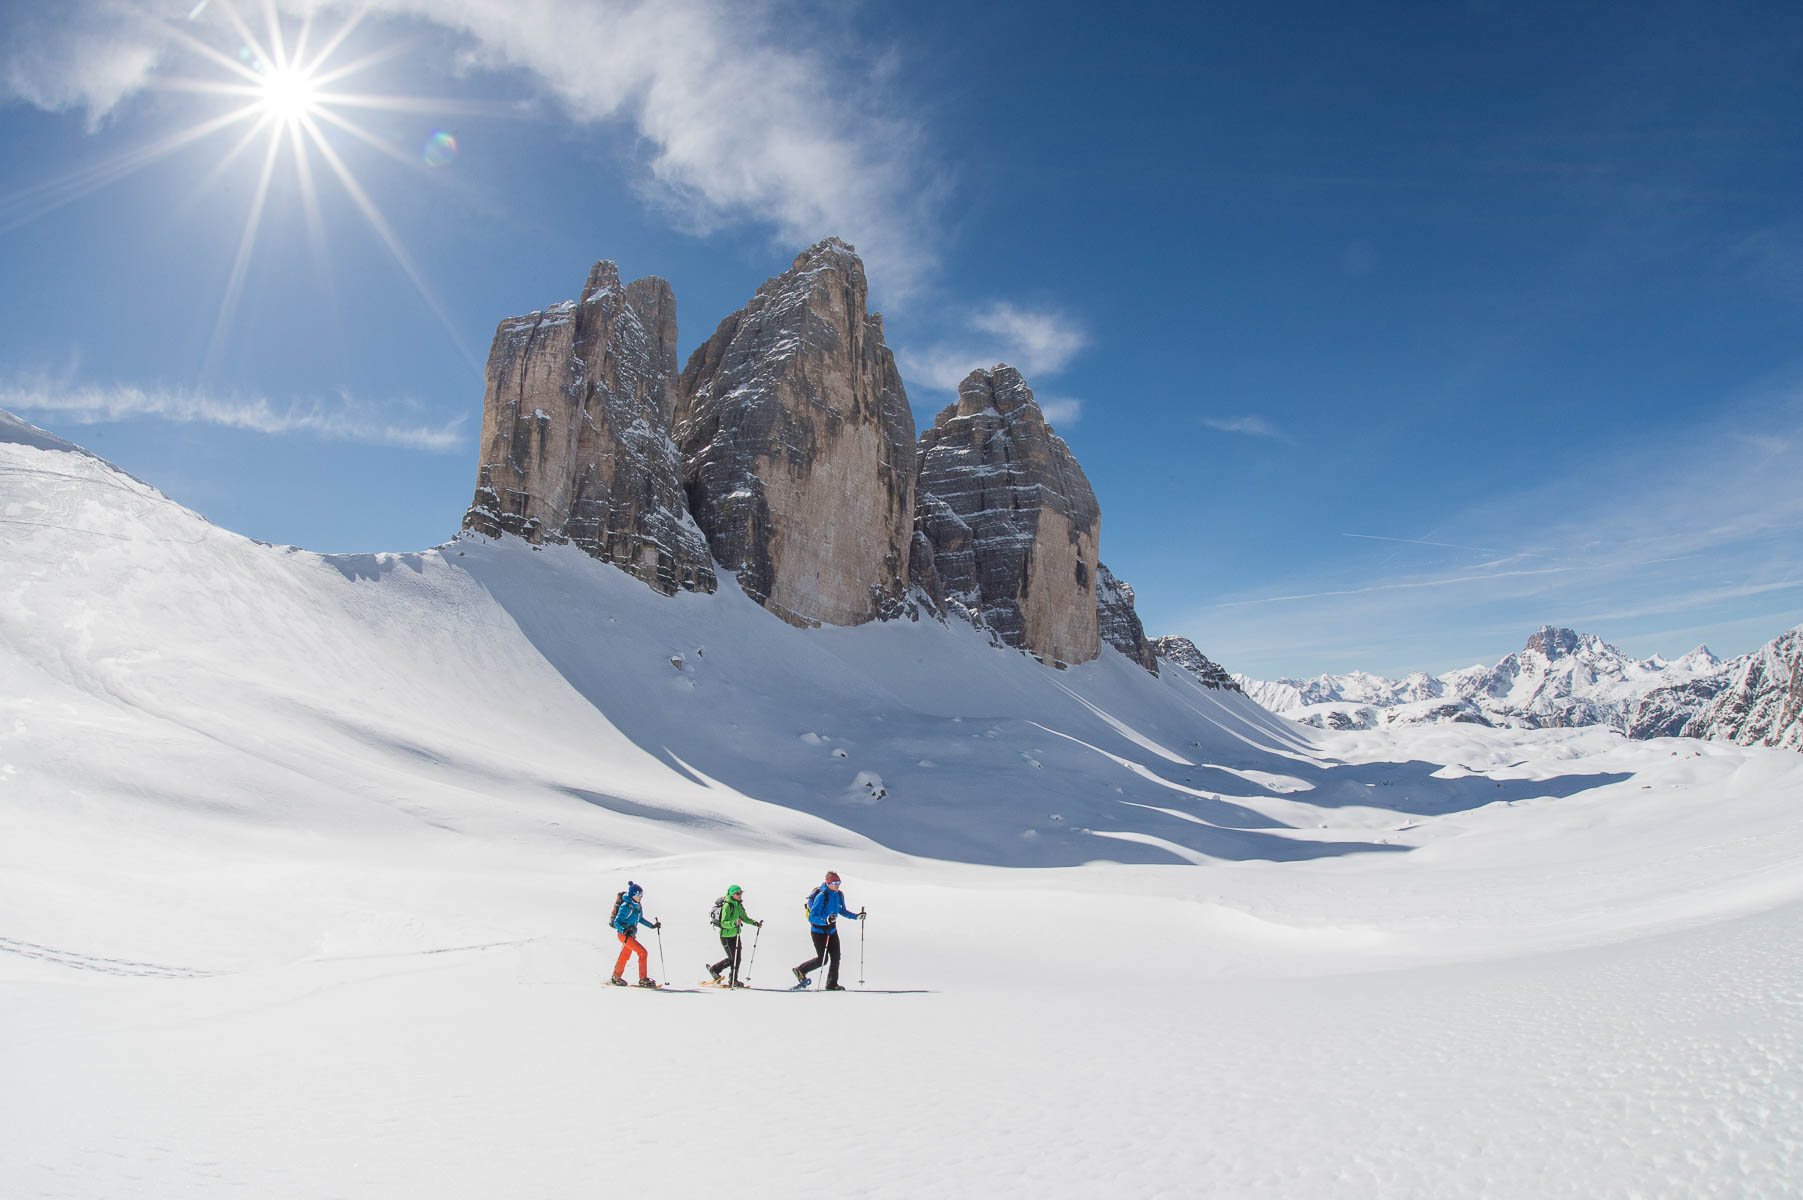 Ski tour & snowshoe hiking Dolomites